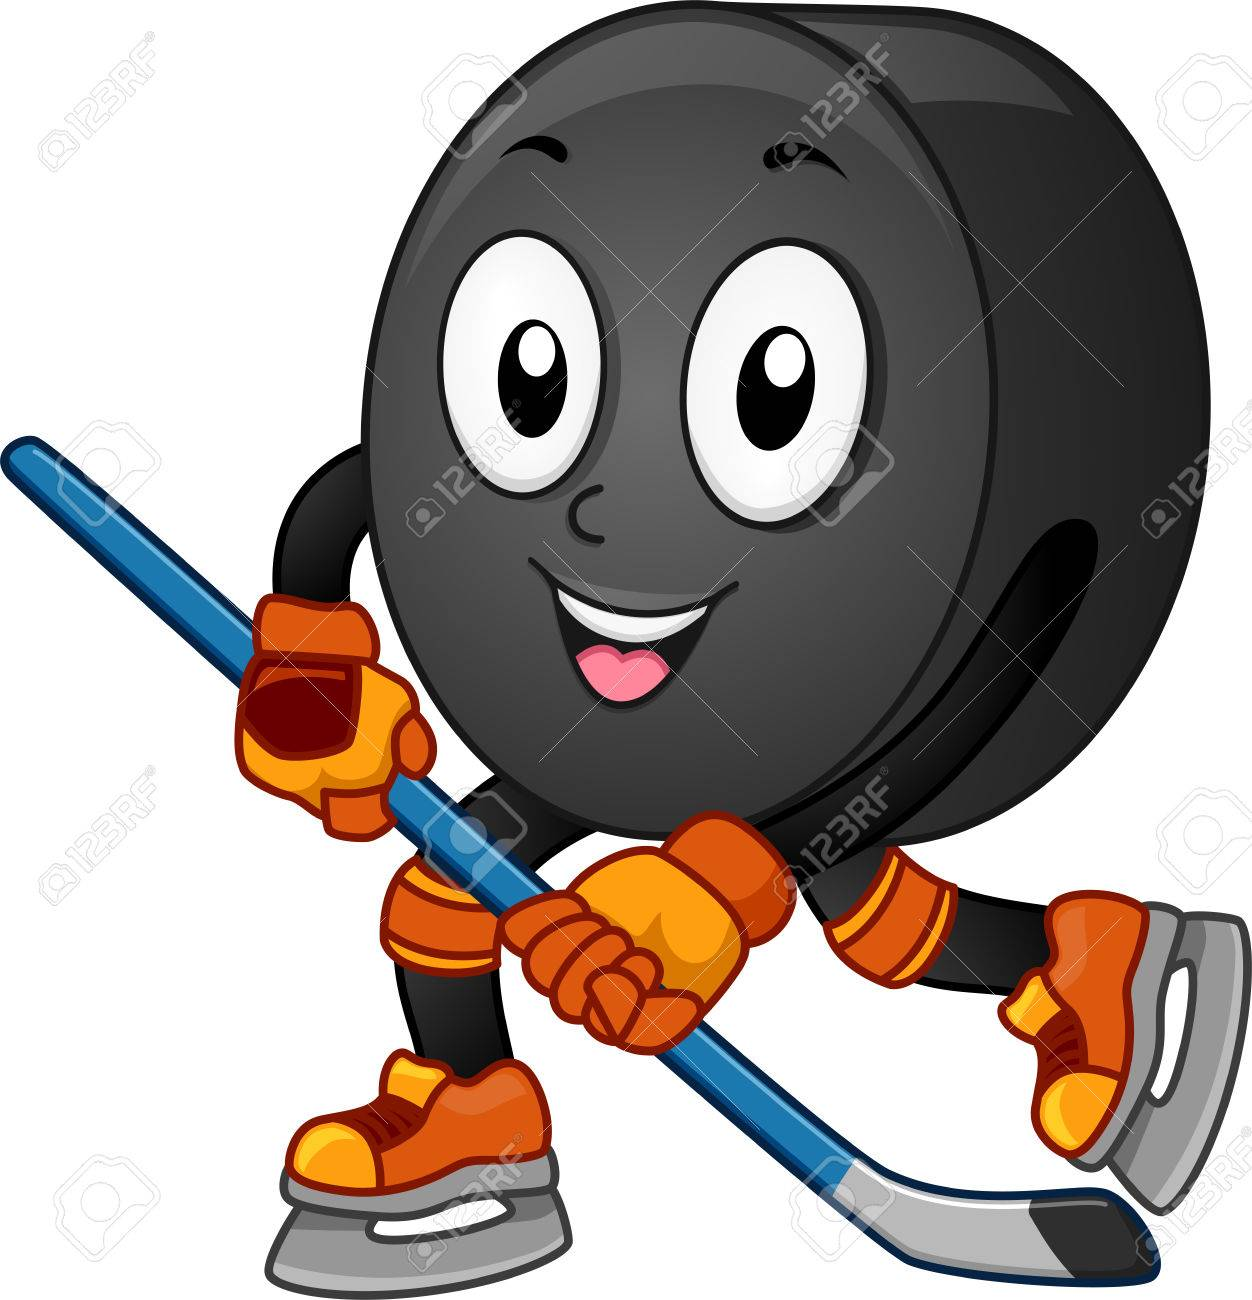 mascot illustration featuring an ice hockey puck gliding across rh 123rf com flaming hockey puck clipart hockey stick and puck clipart